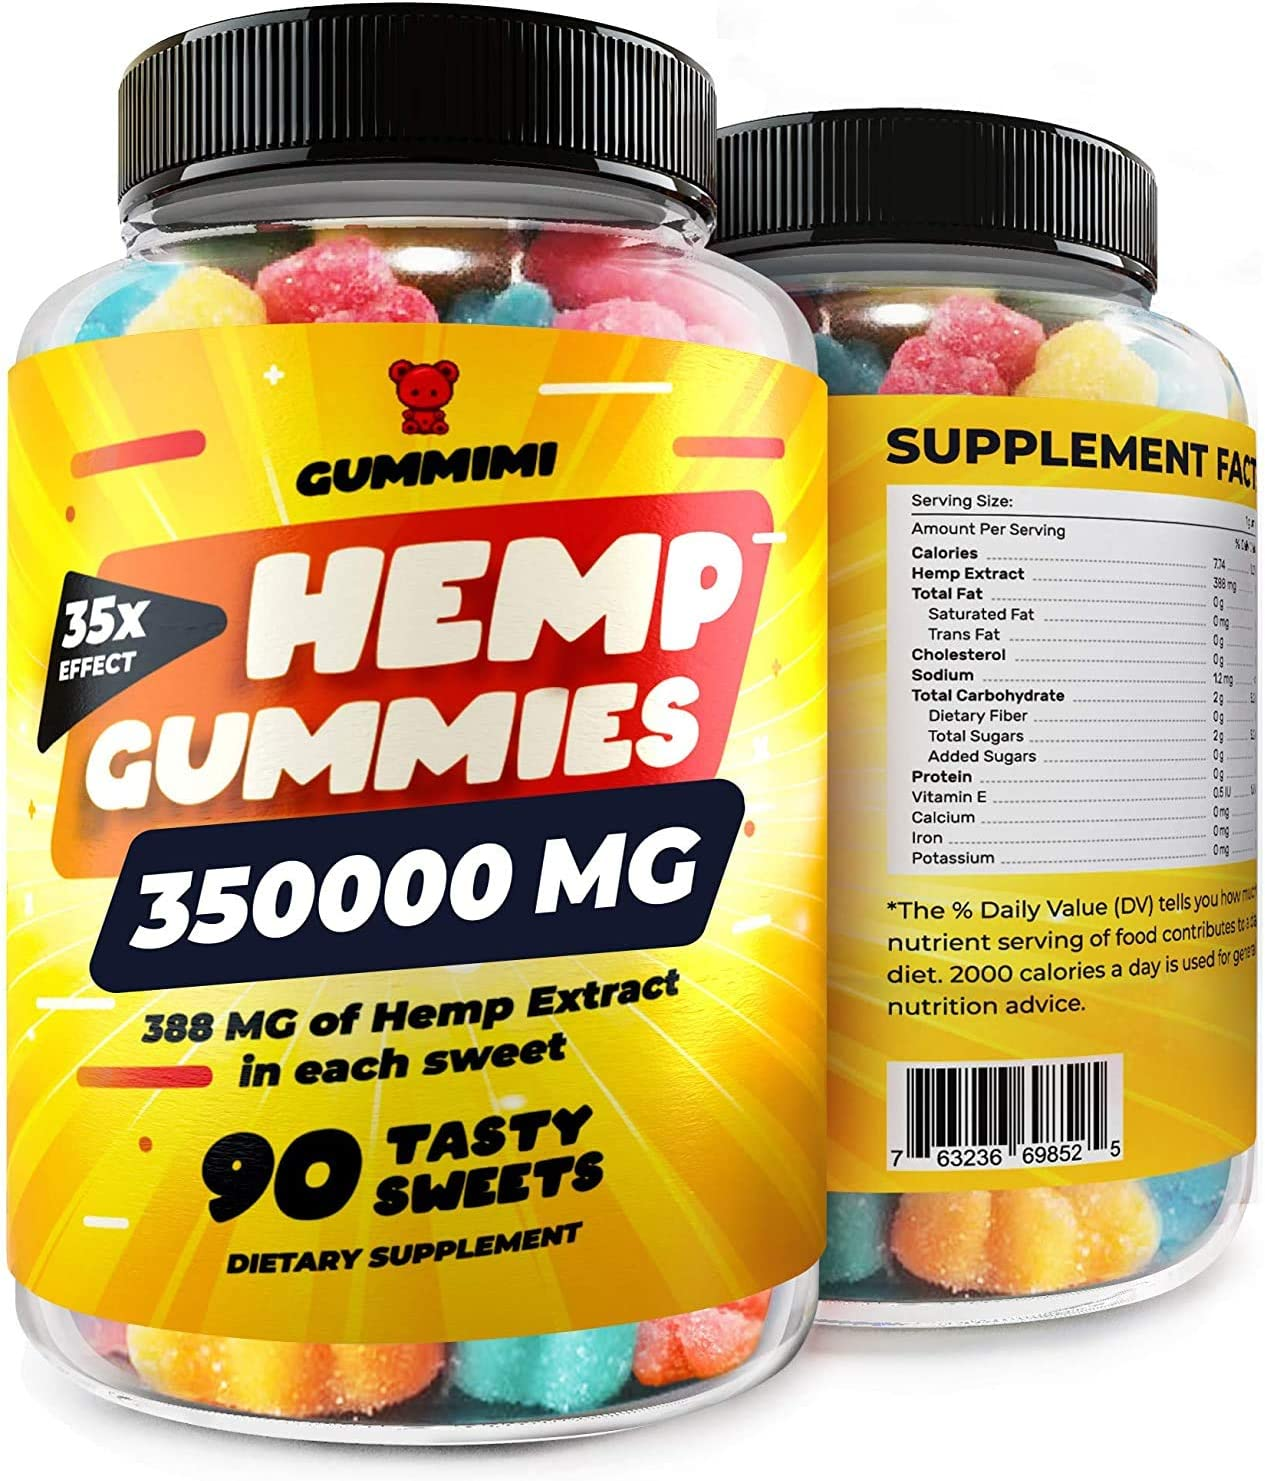 Gummies for Pain, Anxiety, Sleep, Stress Relief, 35000 MG, High Potency, Premium Calm Gummy Bears with Oil - 100% Natural - Improves Memory, Focus, Attention - Omega 3, 6, 9 & Vitamins B, E